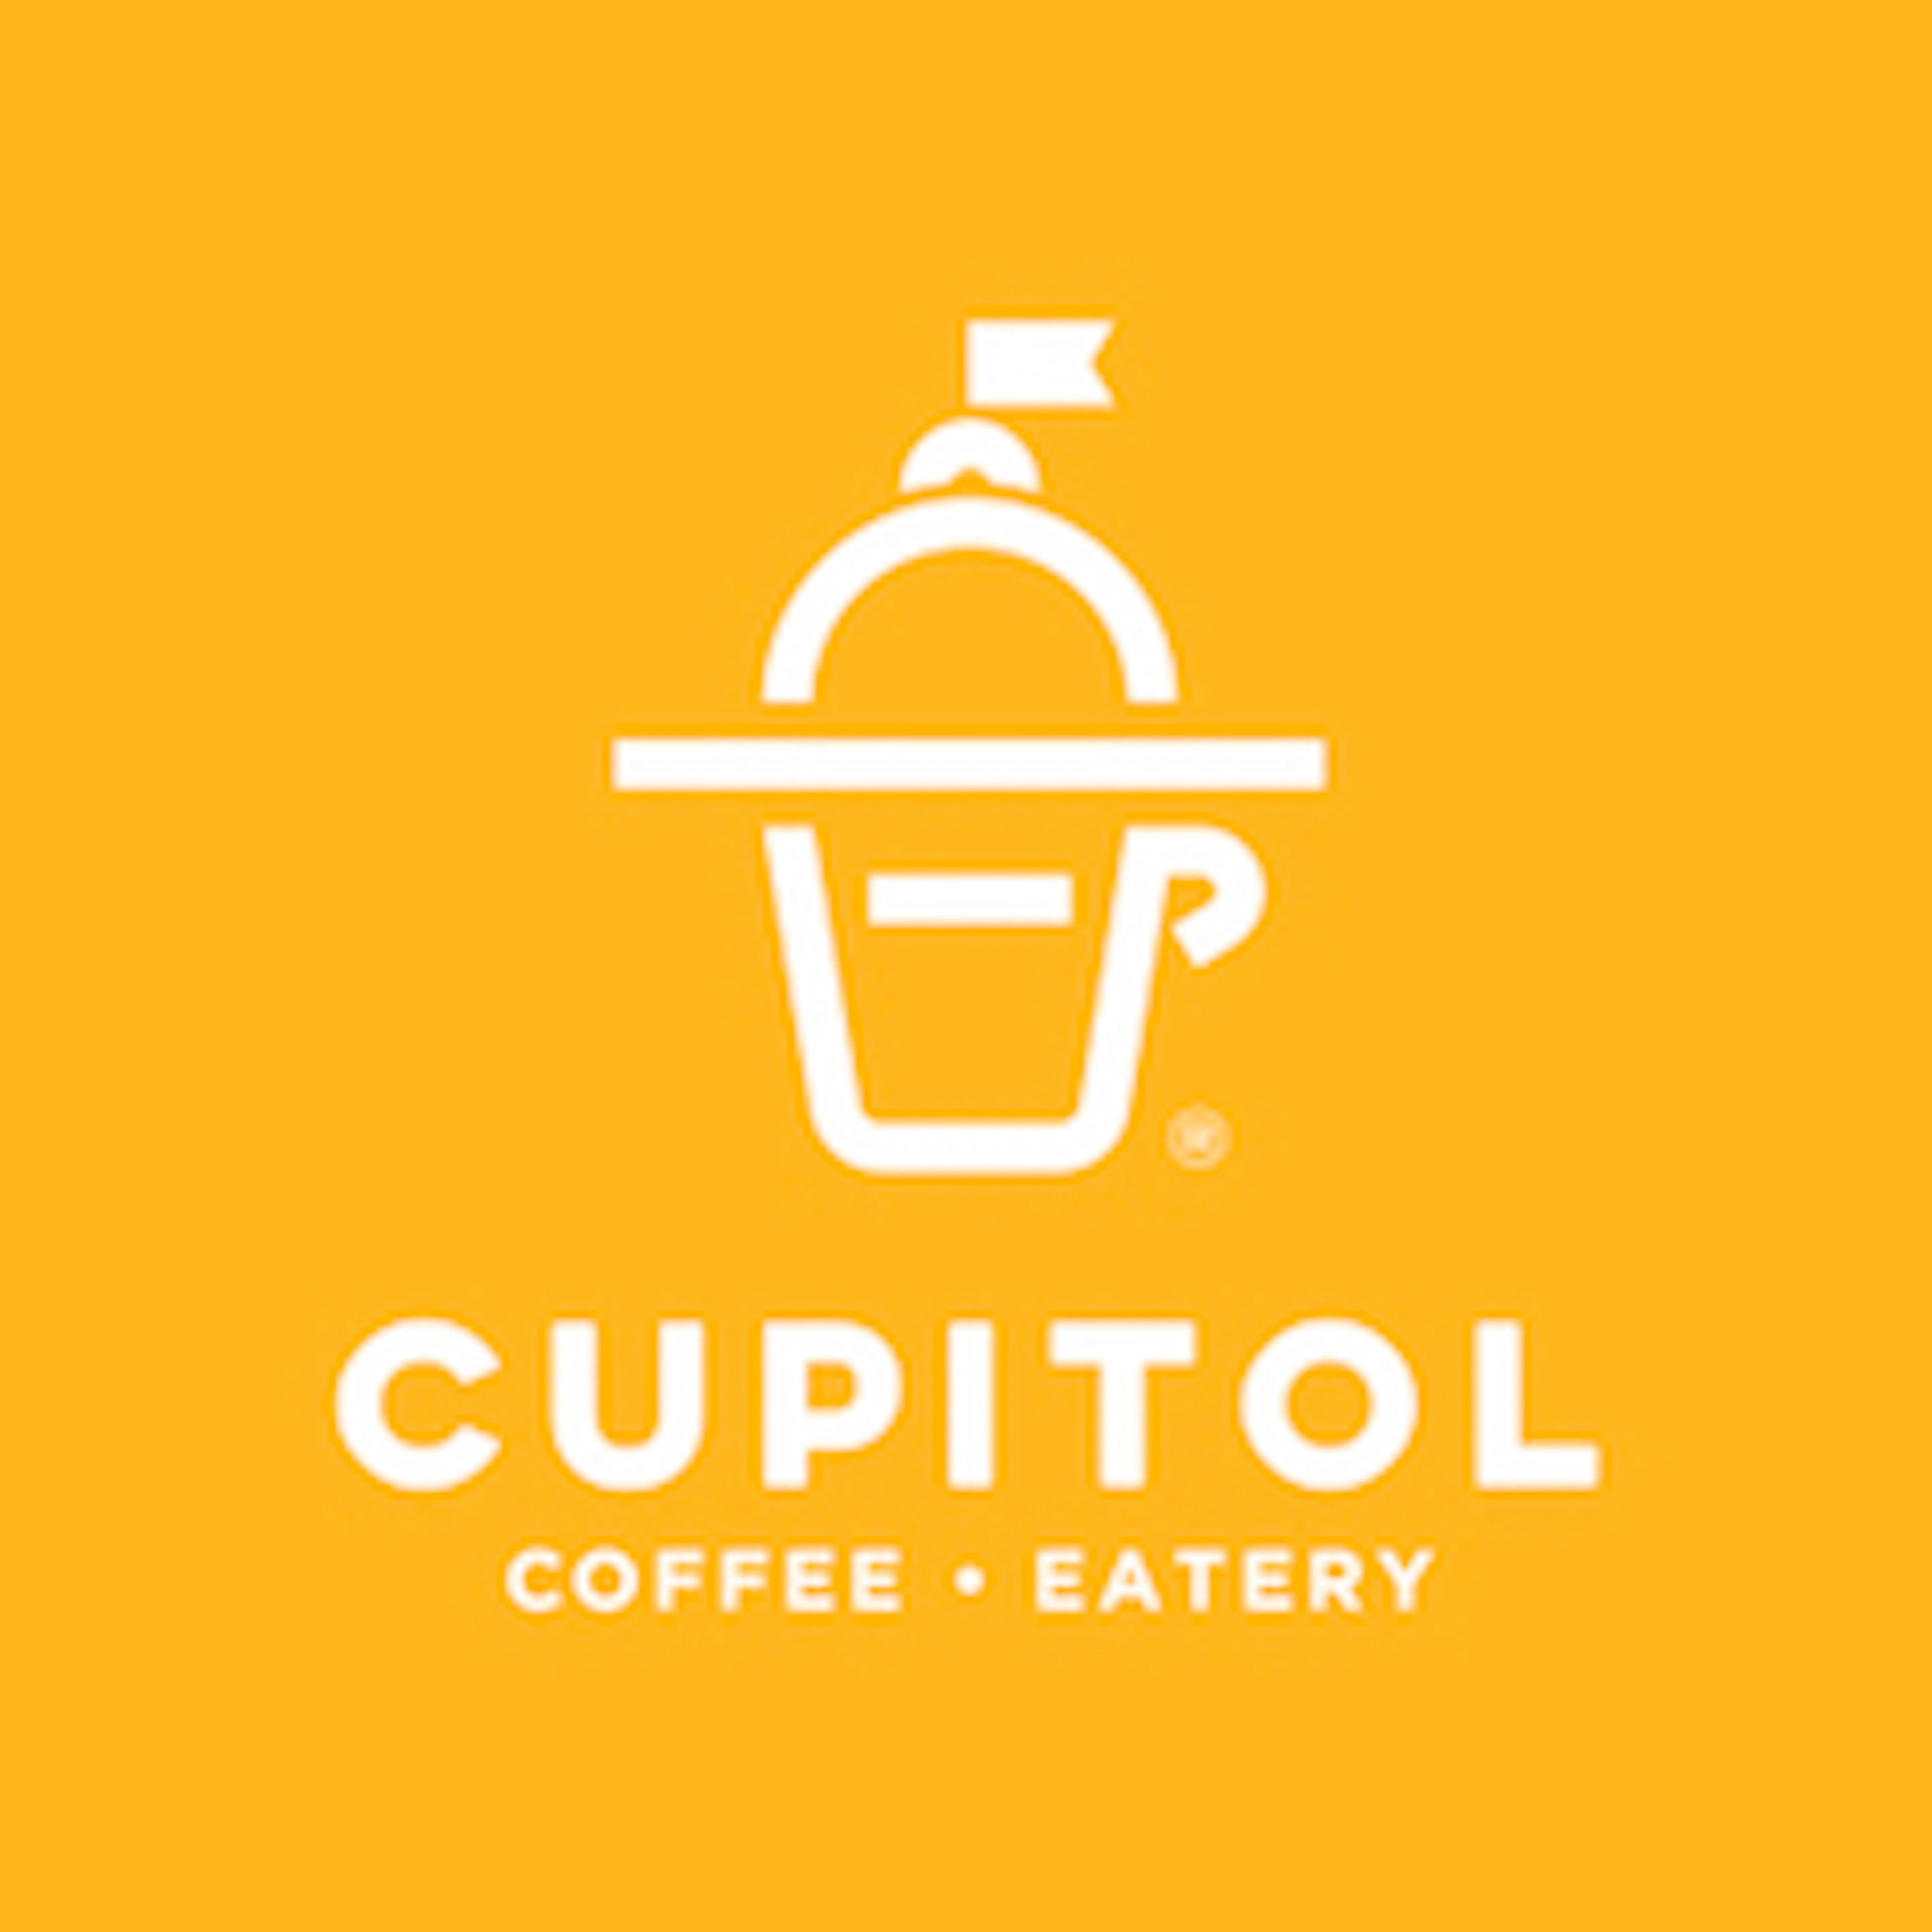 Cupitol Coffee & Eatery image 16